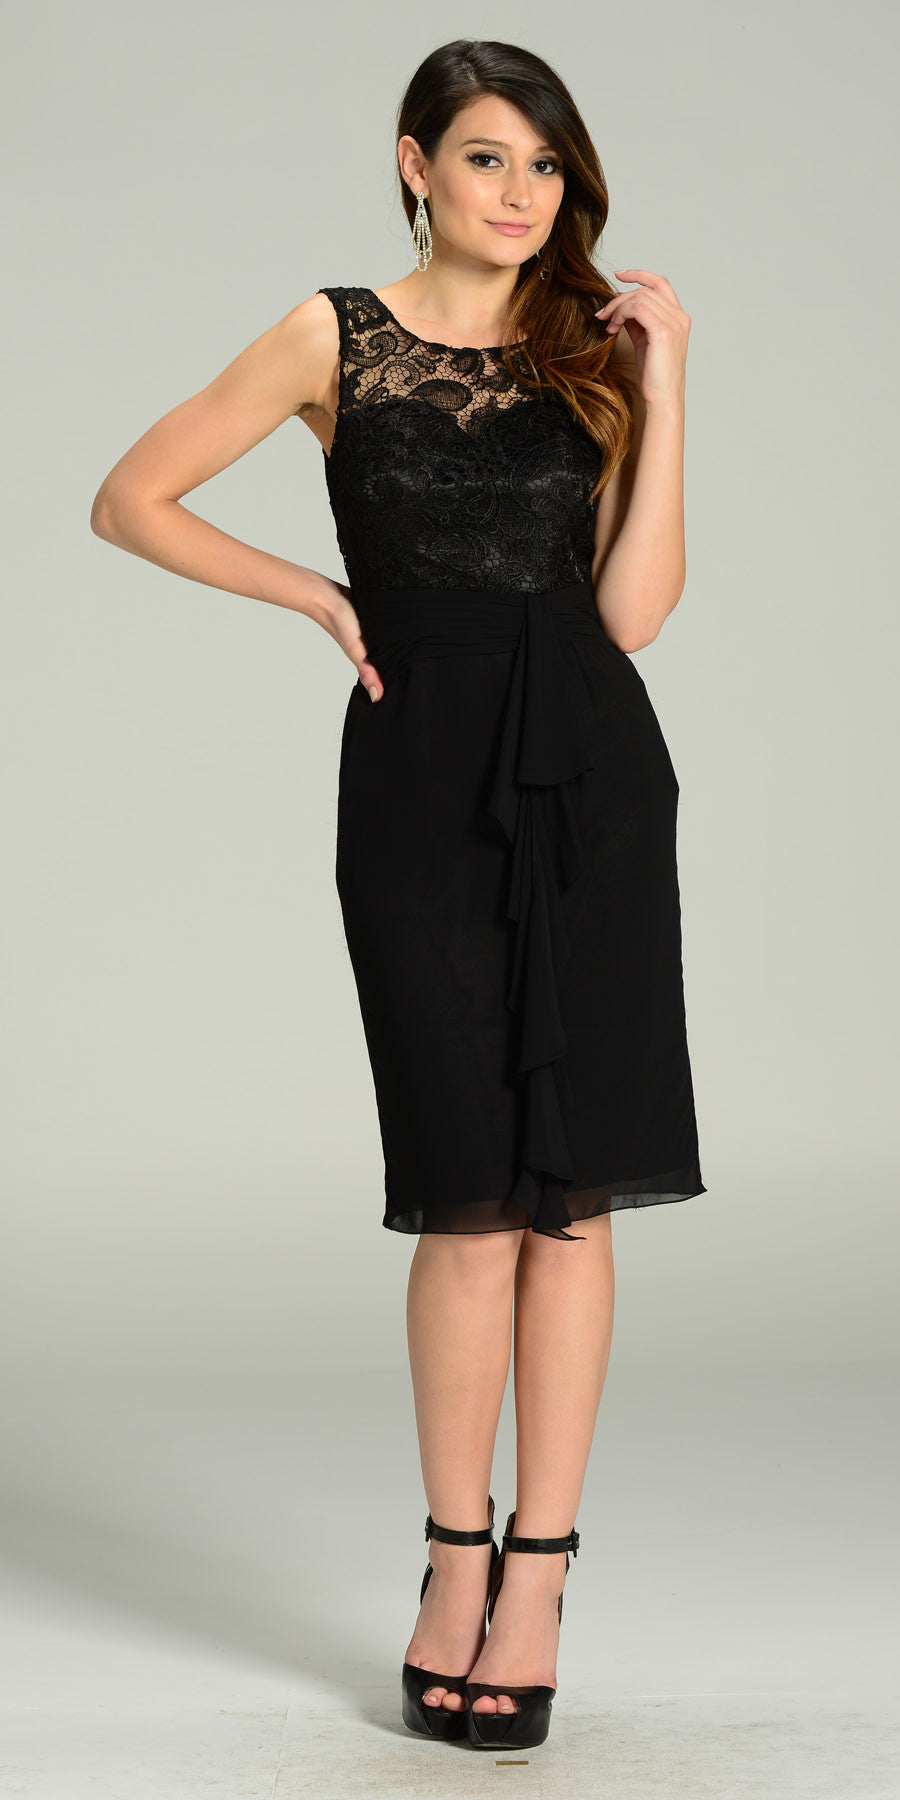 Knee Length Formal Dress Black Lace Top Chiffon Skirt